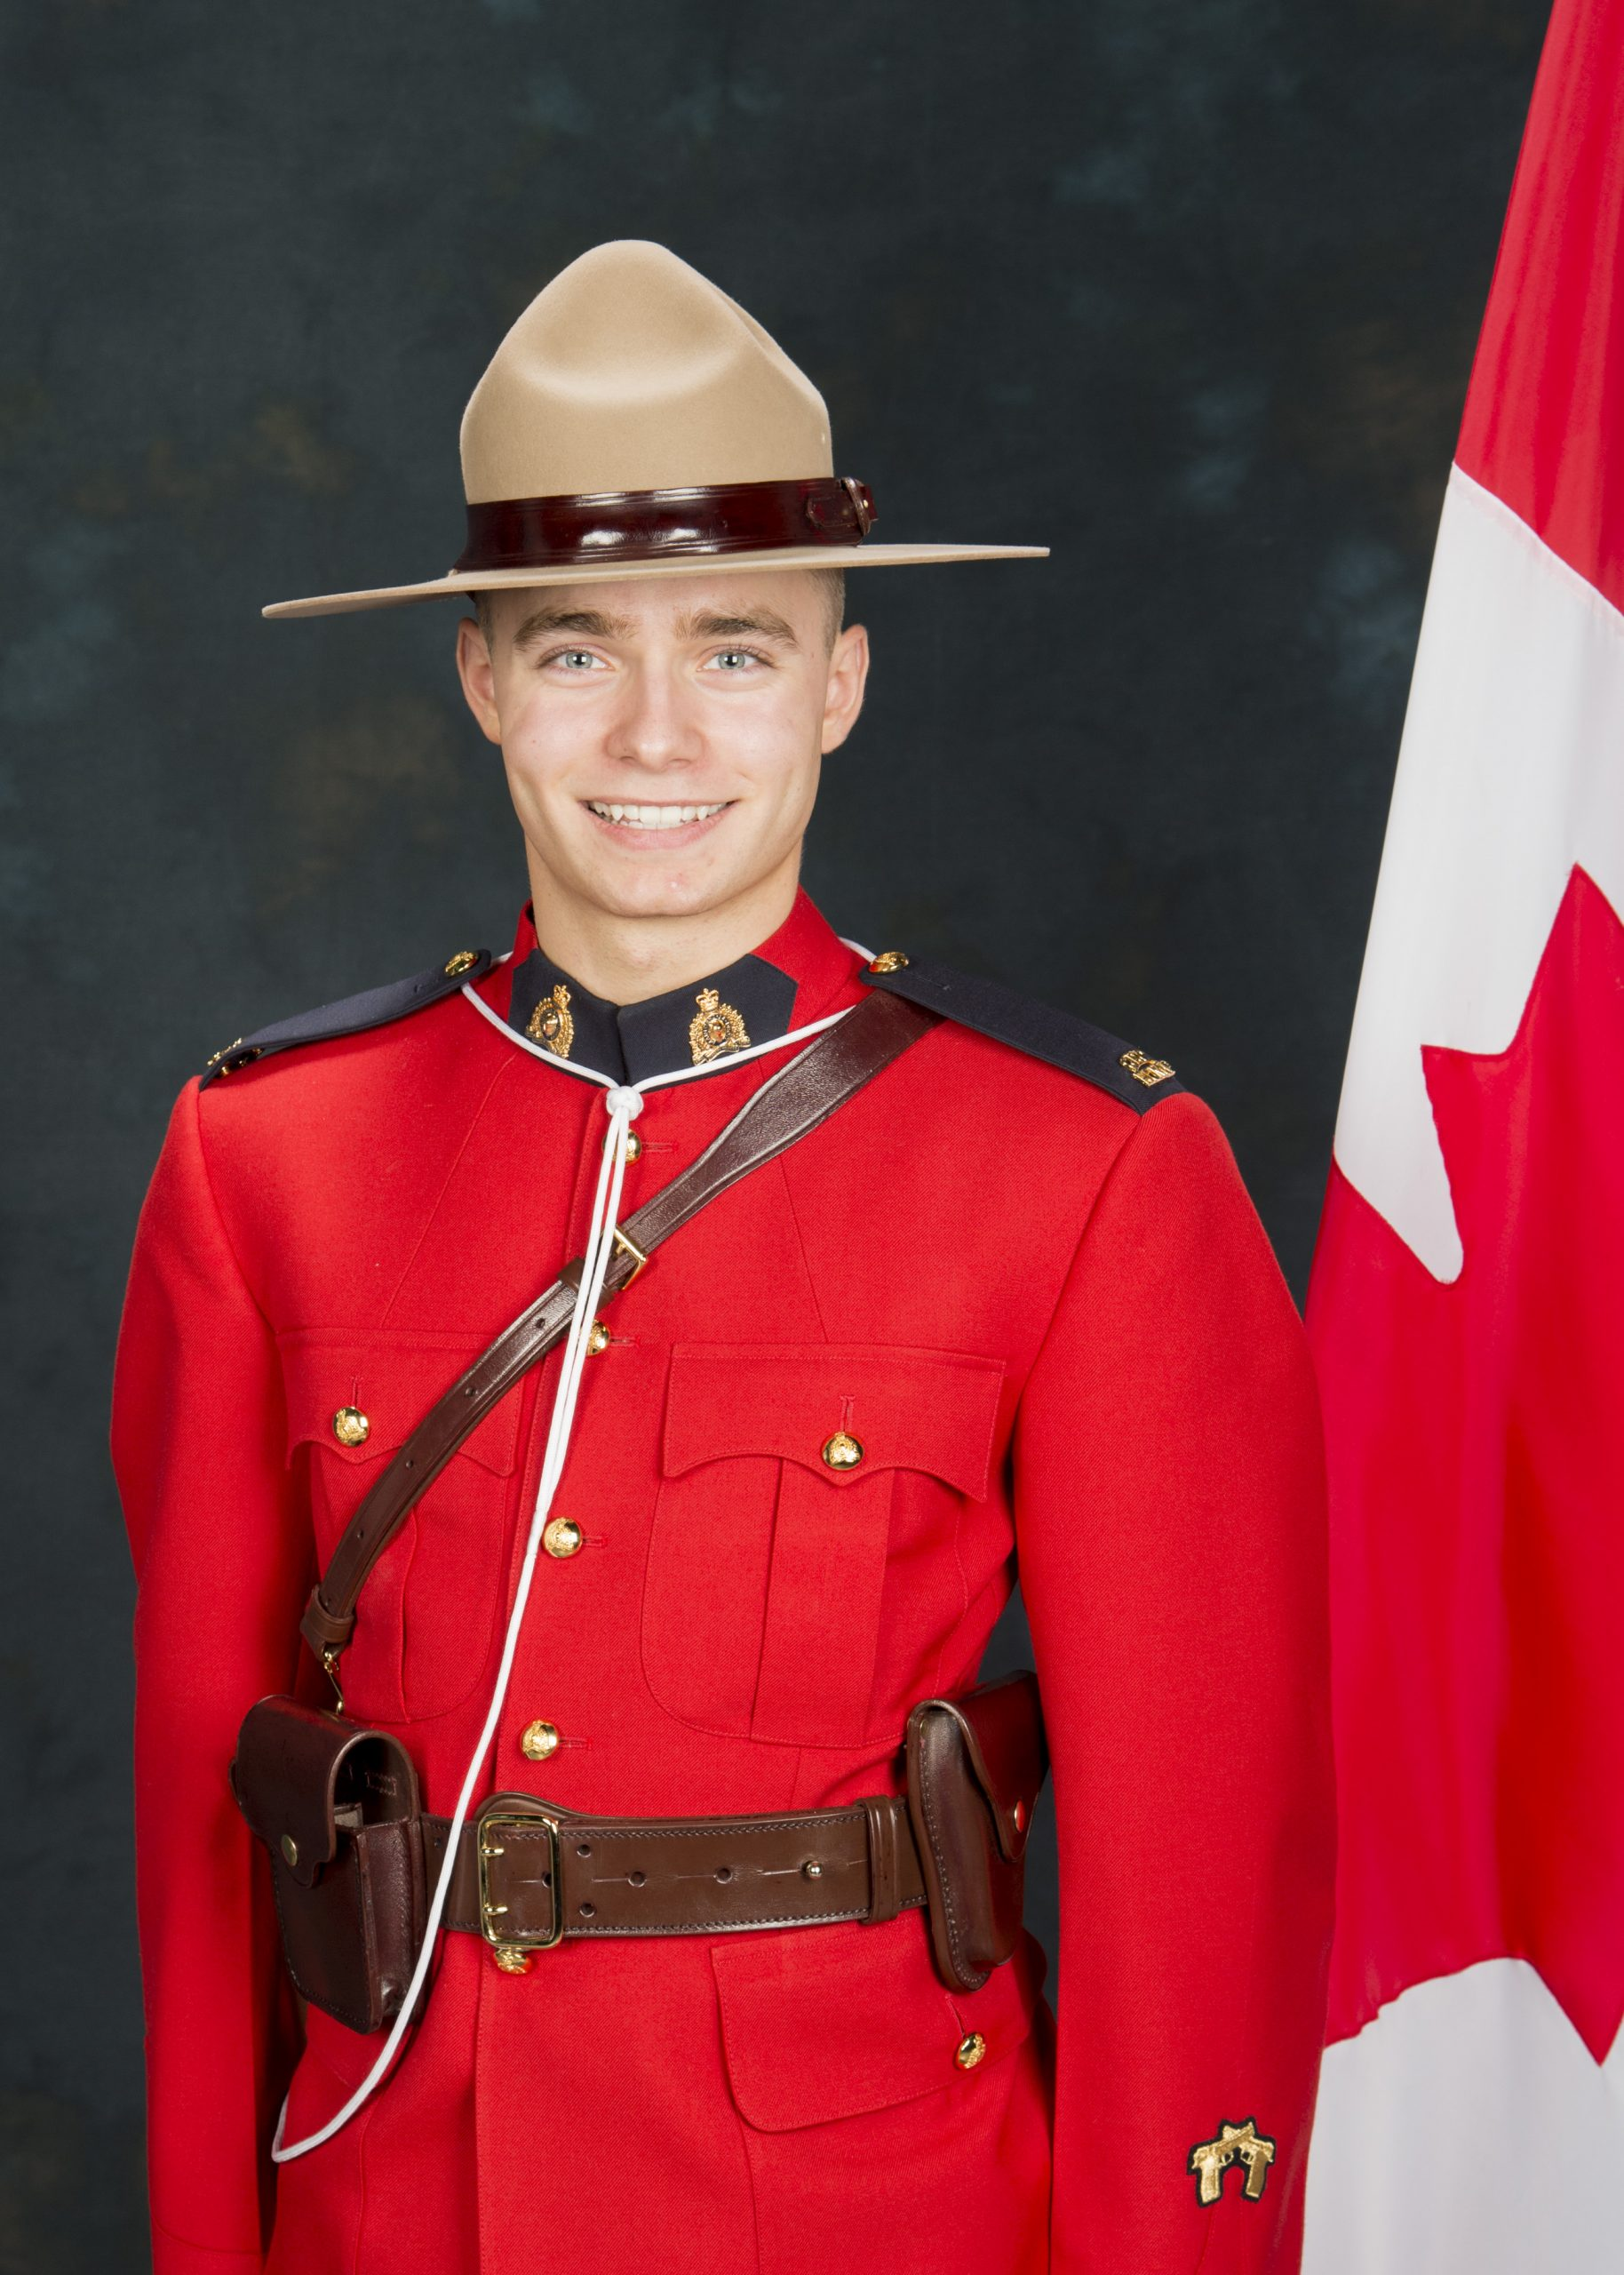 Flags Flying at Half-Mast at All Sask. RCMP Detachments to Honour Constable Shelby Patton, Who Died While On-Duty